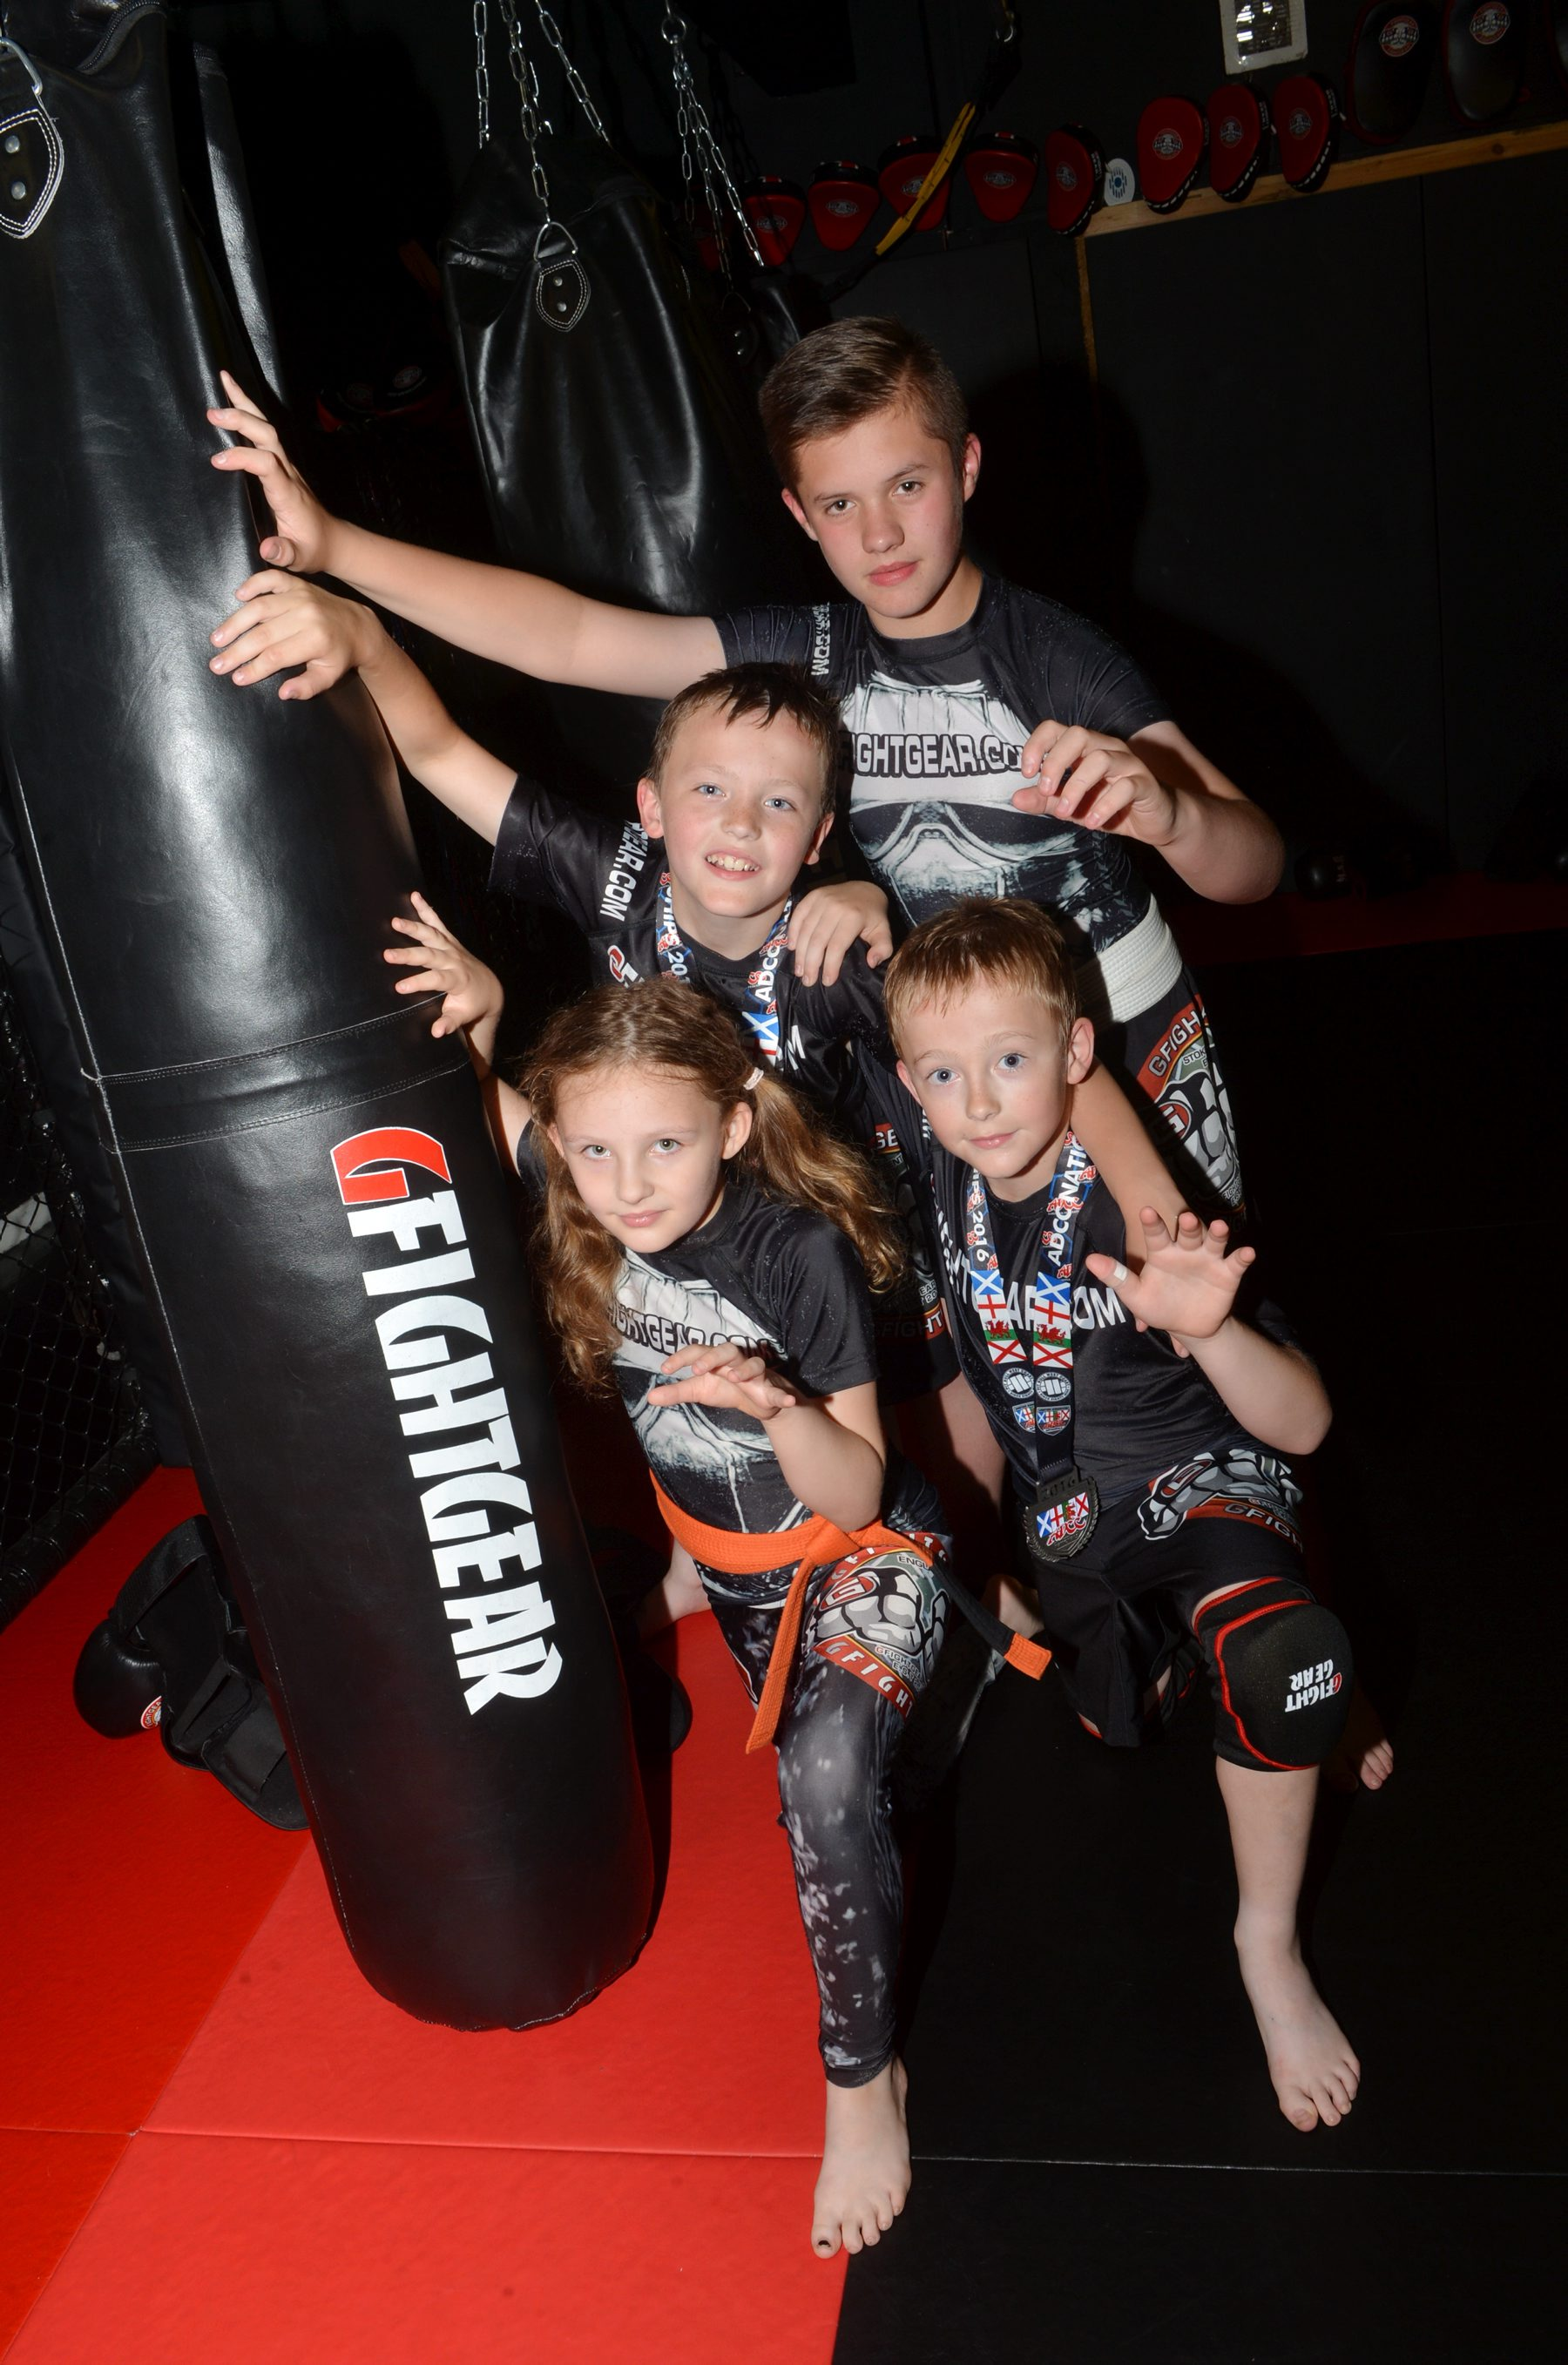 Pictured at the GLADIATOR MMA GYM, THE NEST UNIT 18, TRENT TRADING PARK, MELVILLE STREET, HANLEY, ST1 3LY as local MMA fighters win medals at a recent event in Fenton, having entered at just 10 days' notice.  Pictured left to right are 10-year-old Amy Clarke who won silver in the 40kg+ seven-10-years section, Charlie Robinson, aged nine, who took bronze in the same event as brother Bailey Robinson, aged 10, who took silver in the -40kg weight division having met each other in the semi-finals and  Reece Grocott, aged 13, who took gold in the +55kg category of the 11-14 year-olds section.